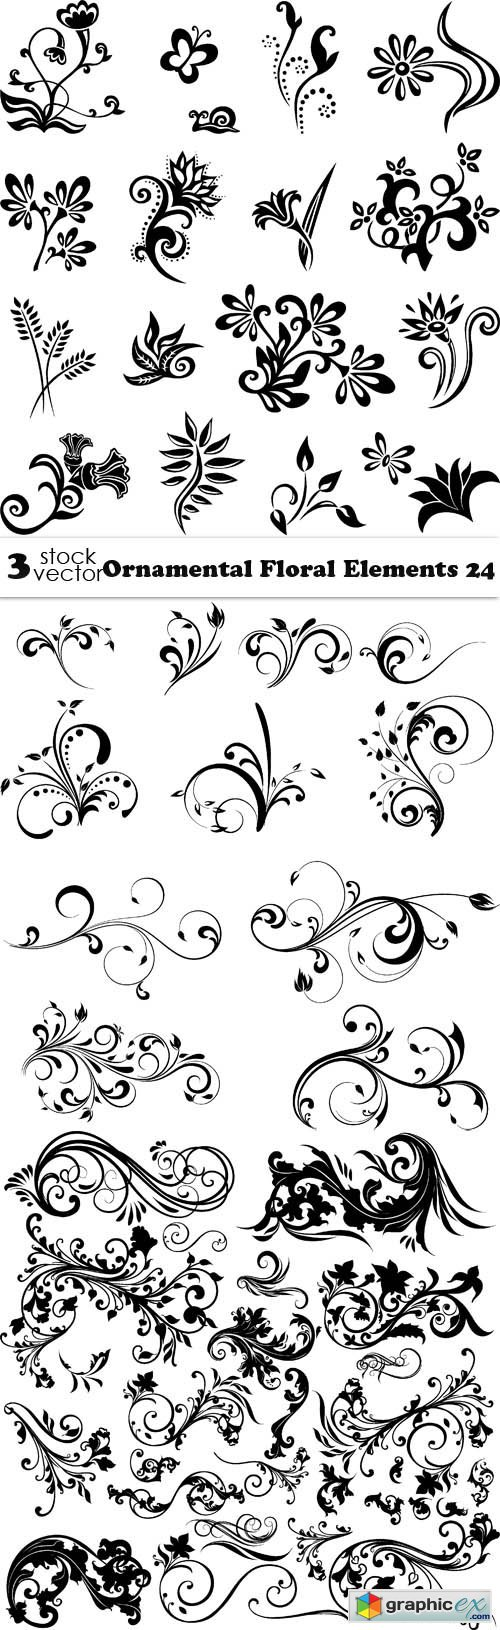 Vectors - Ornamental Floral Elements 24